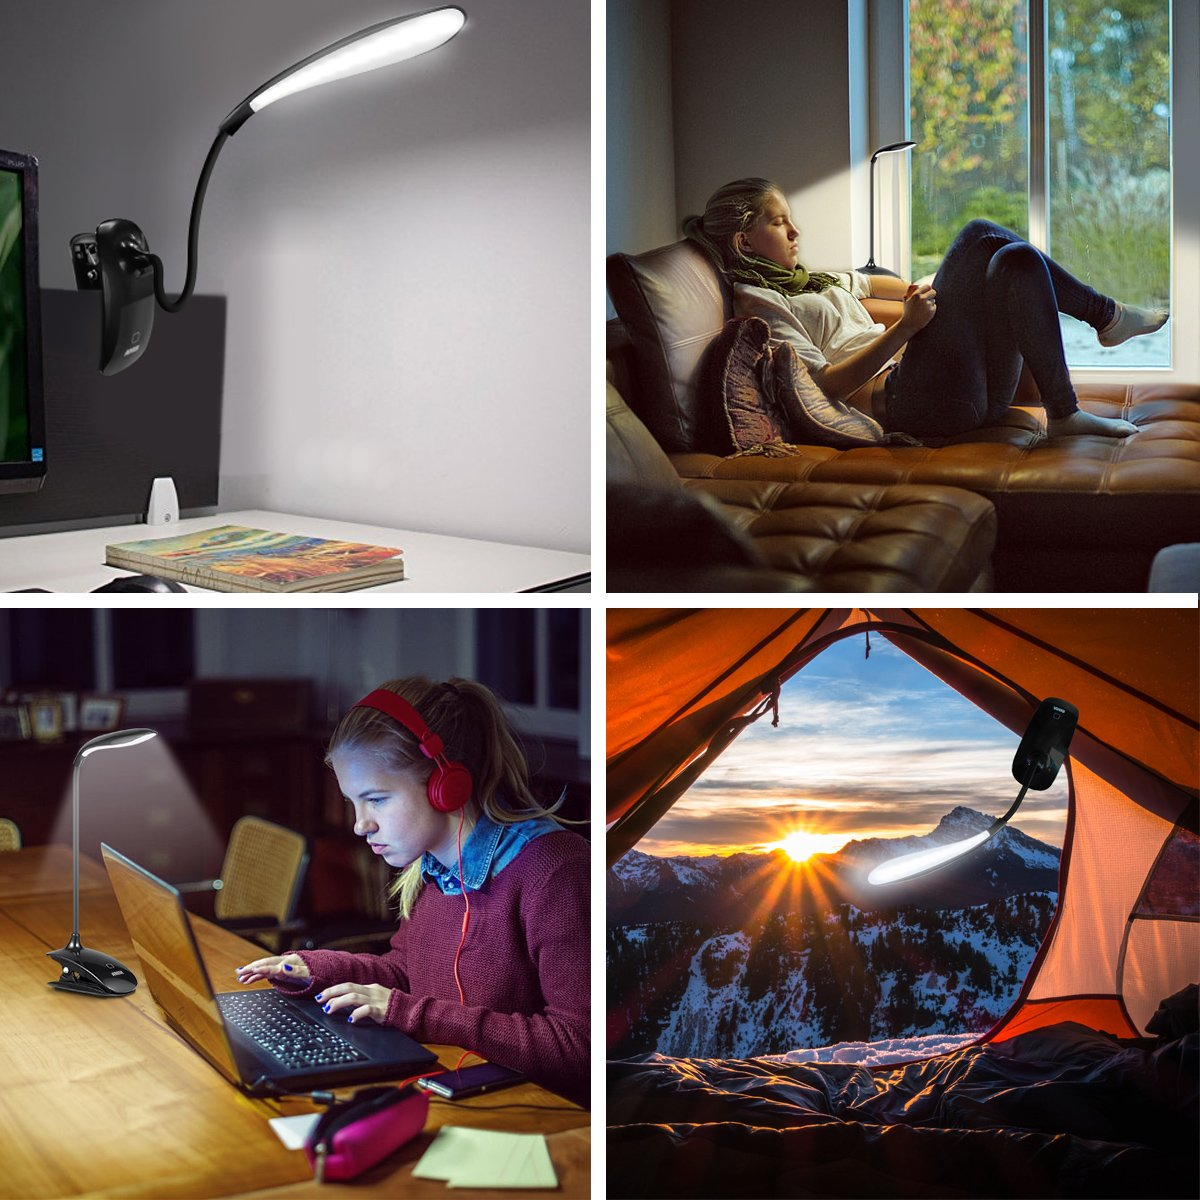 AMIR 16 LED Book Light, Clip on Reading Light, Flexible Book Reading Lamp, USB Rechargeable Bedside Desk Lamp with 3 Levels Brightness, Touch Switch, Good Eye Protection for Reading in Bed, Black by AMIR (Image #6)